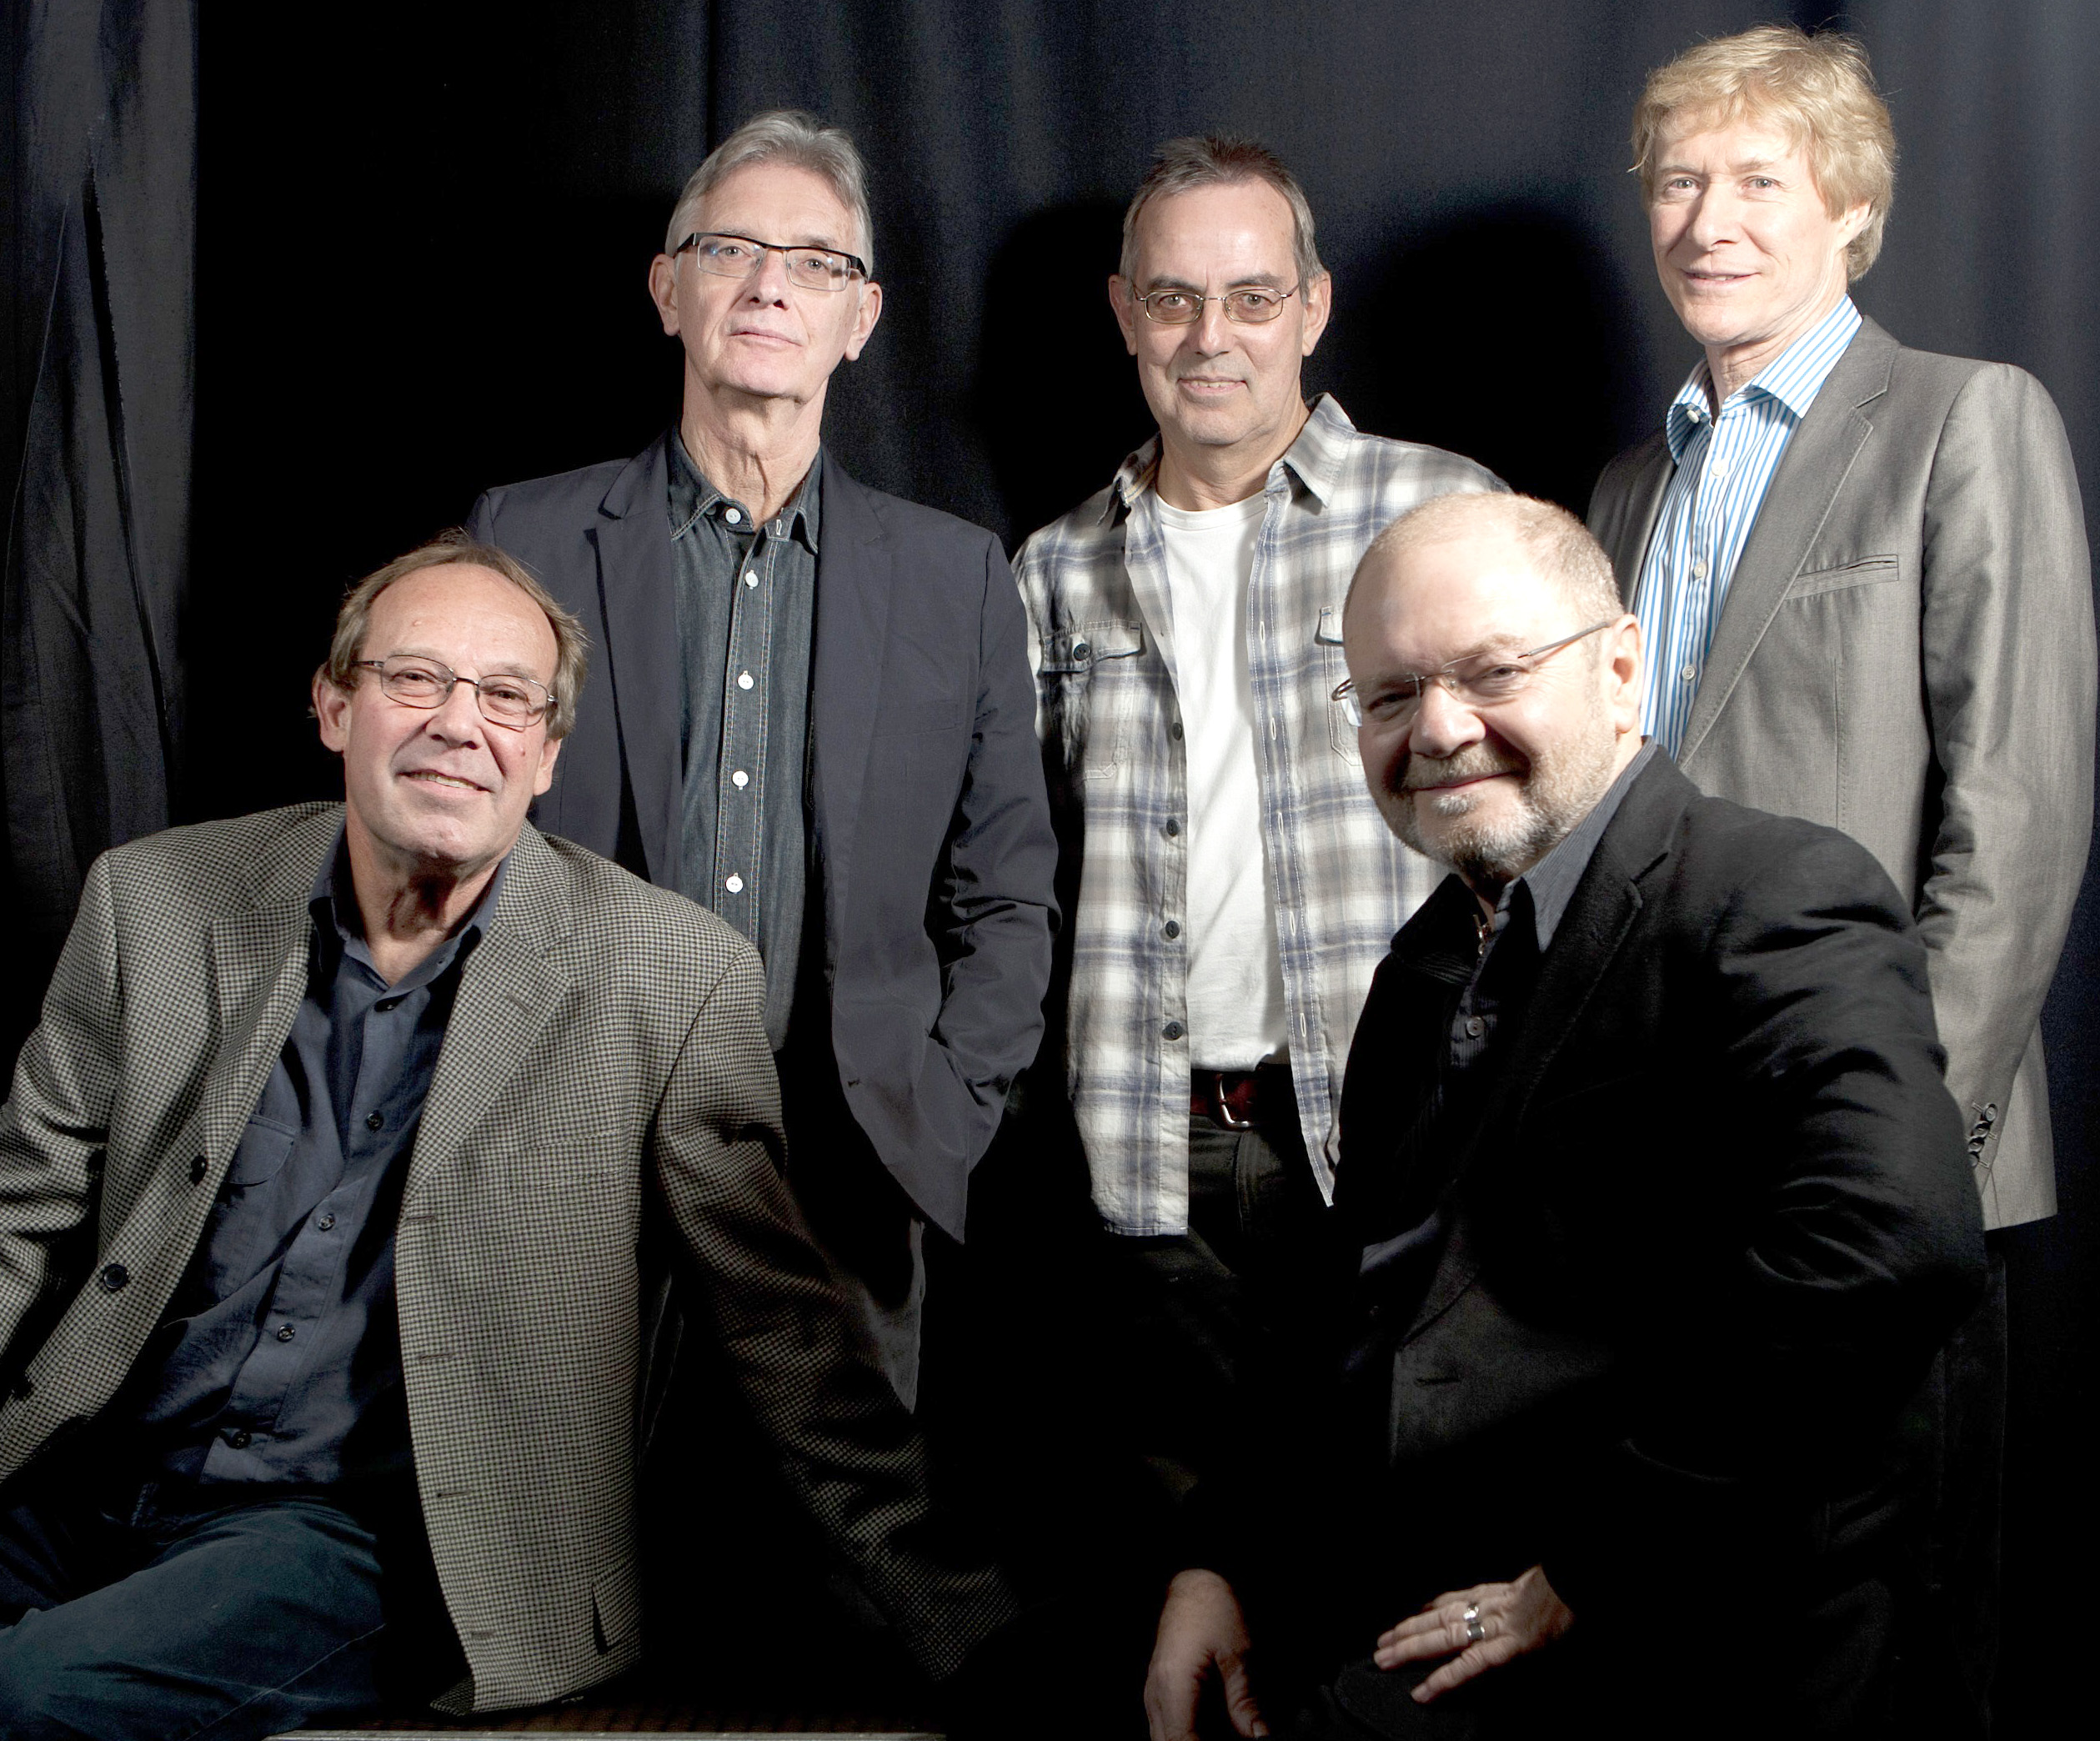 Blues Band Returns to Gala Theatre